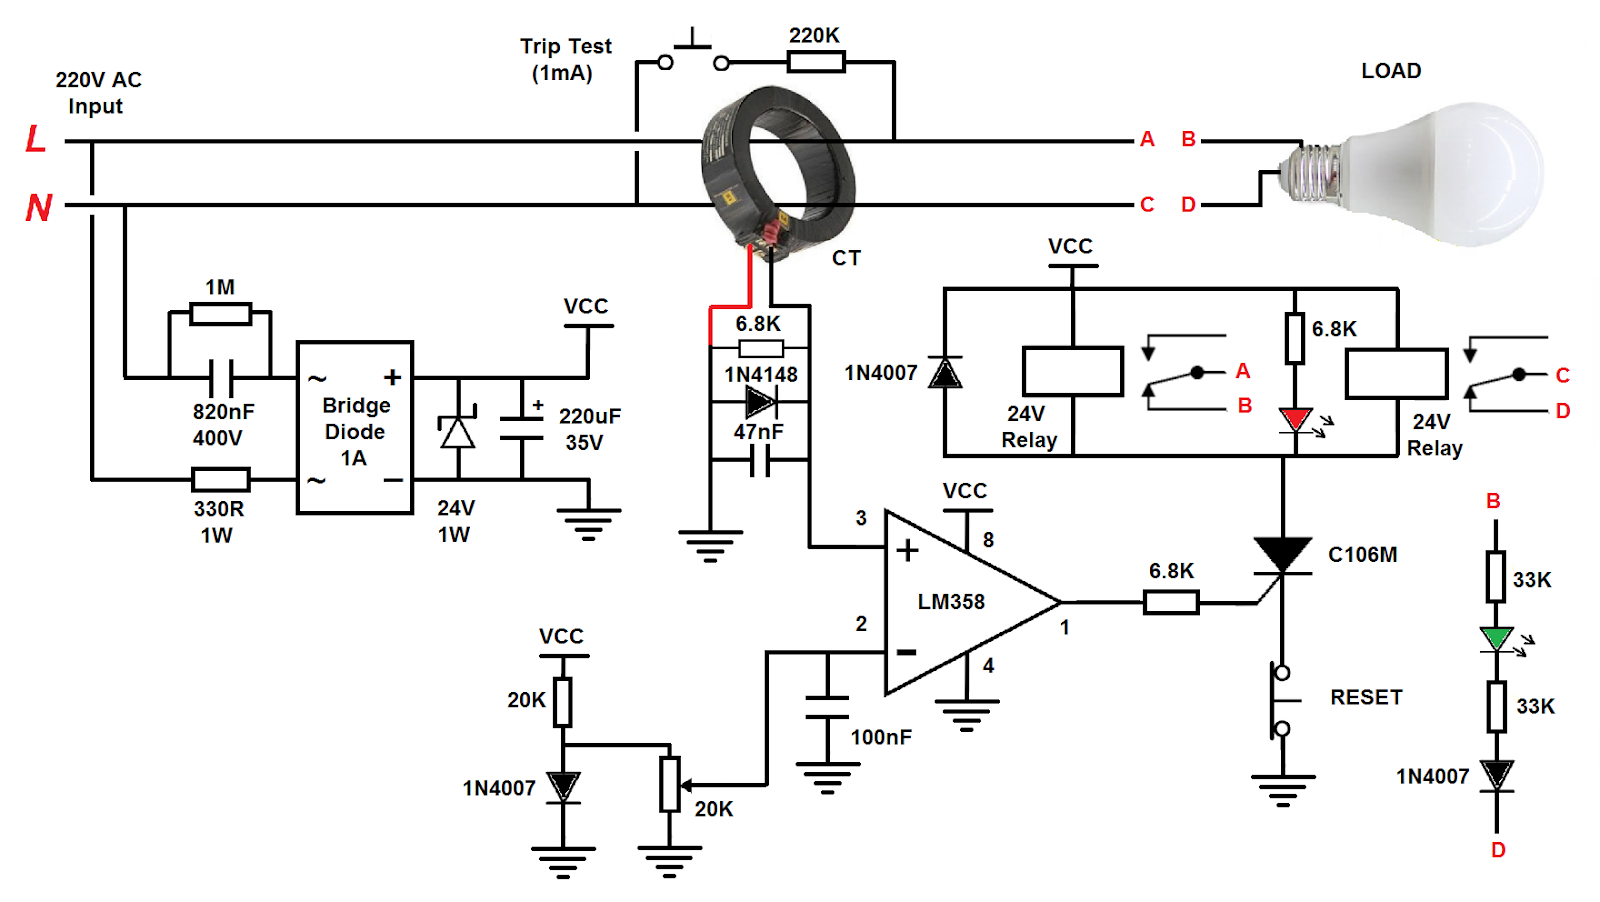 RCD Circuit to Protects the Human Against Electric Shock